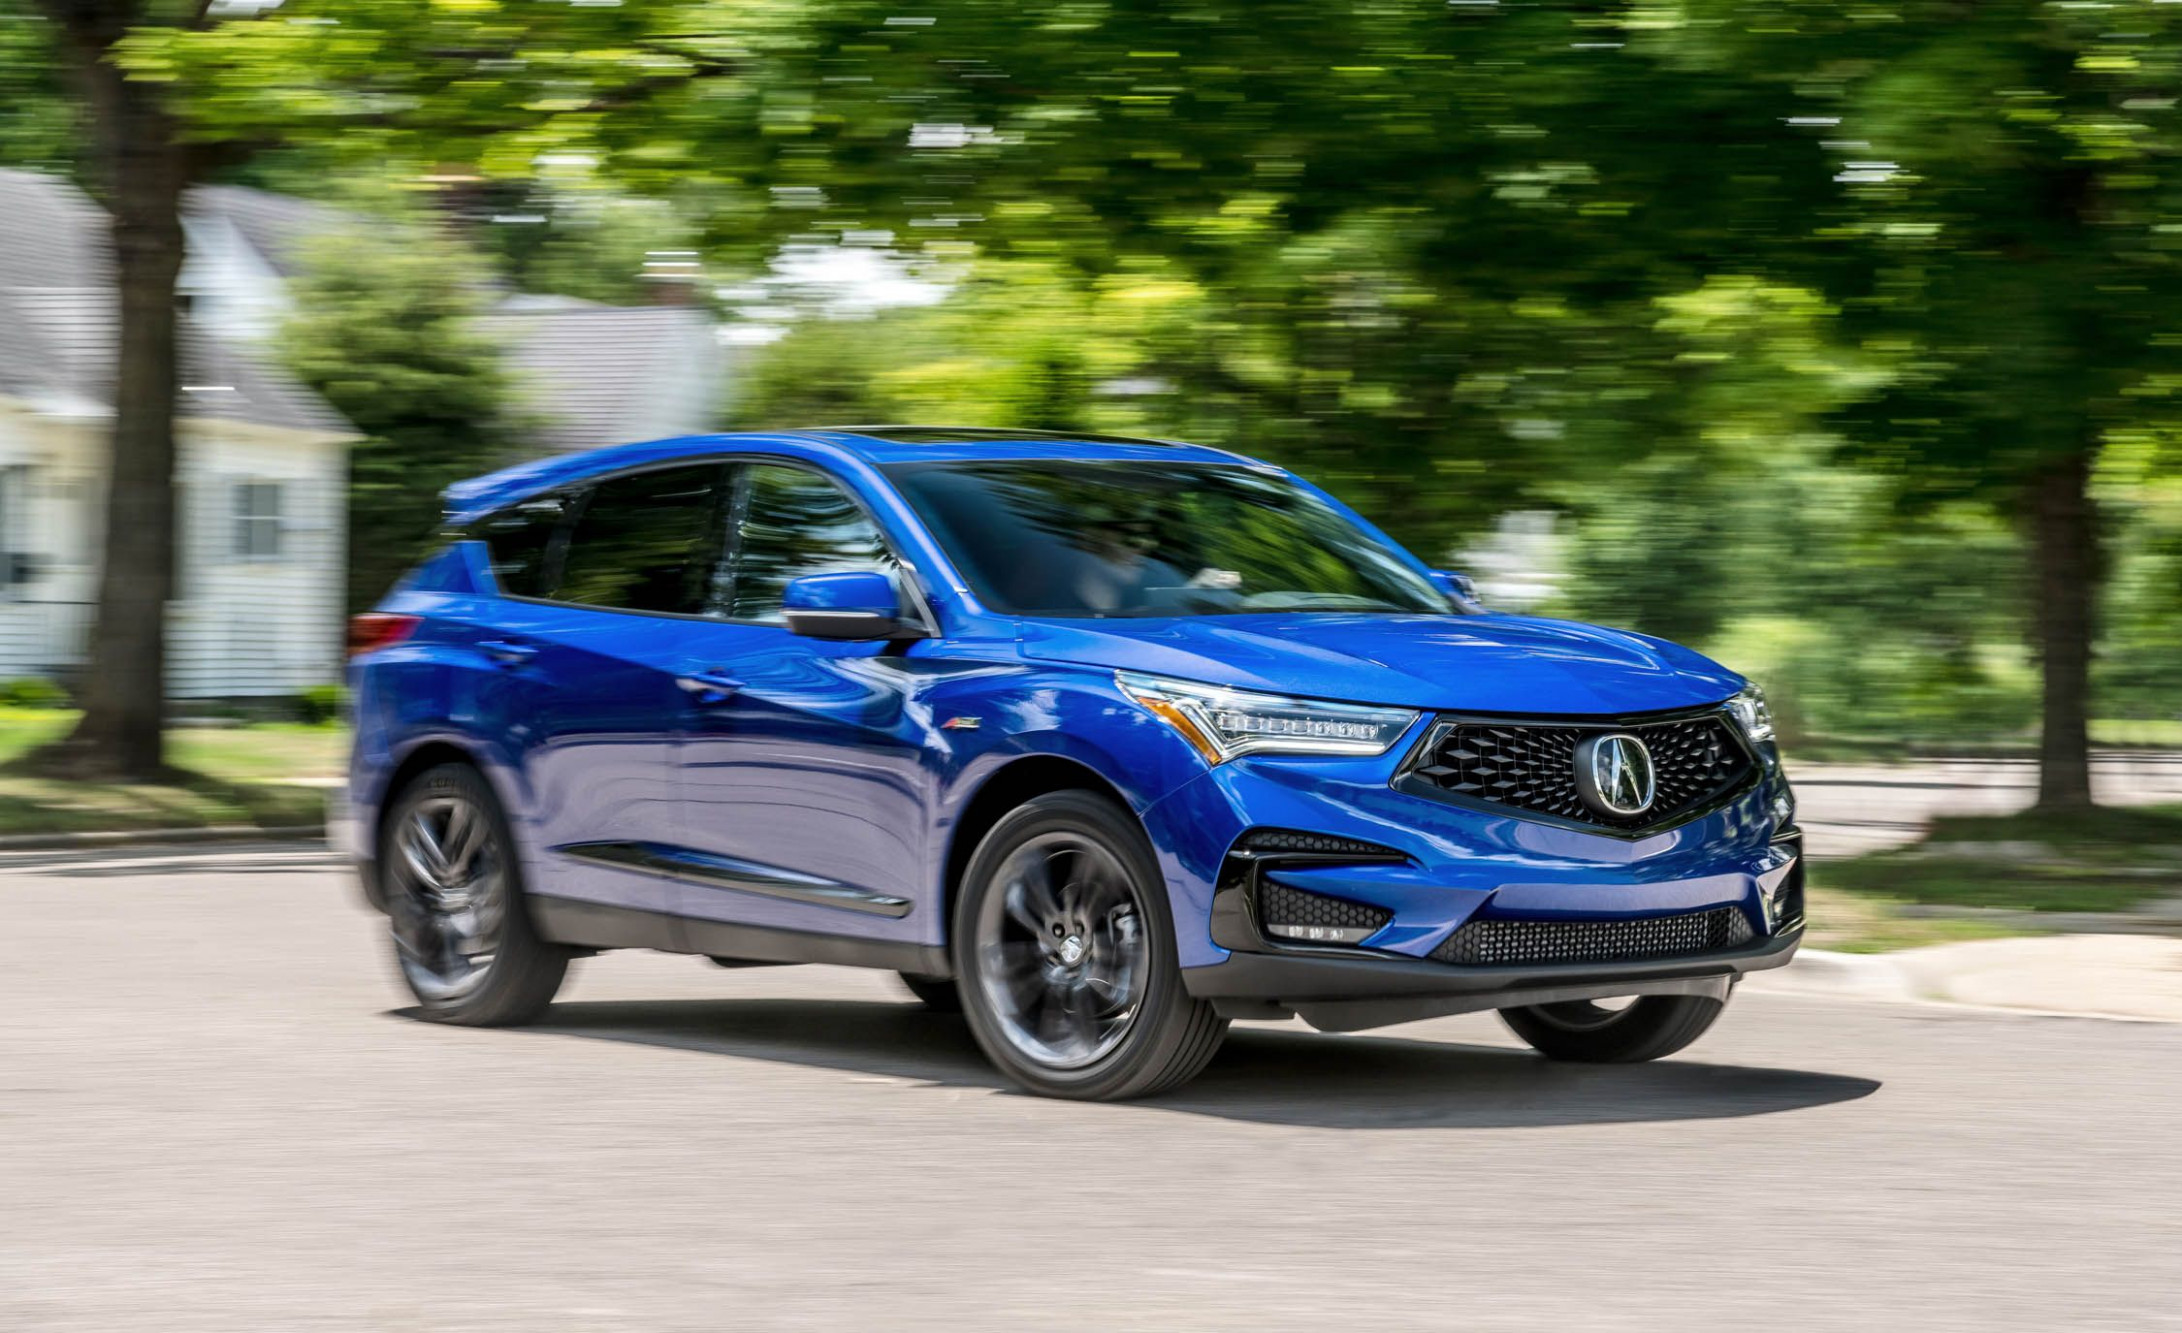 8 Acura RDX Review, Pricing, and Specs - acura rdx 2020 lane keep assist